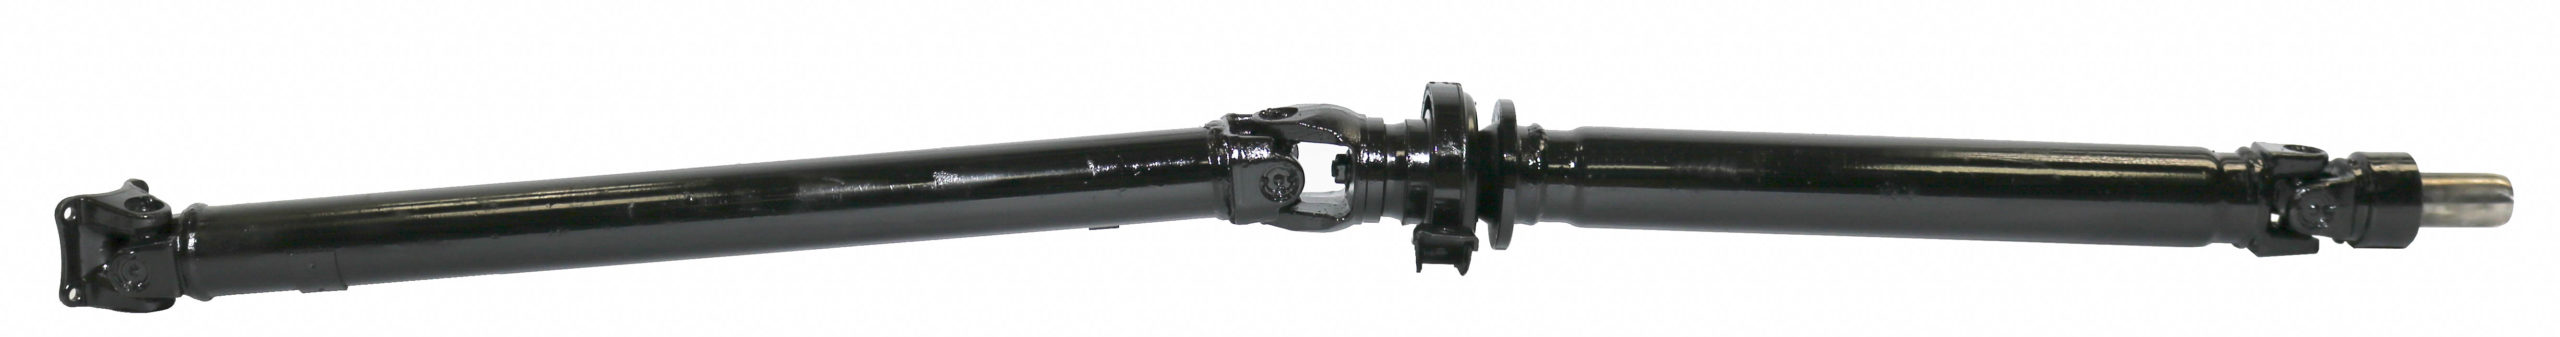 Drive shaft rear for Suaaru Forester.